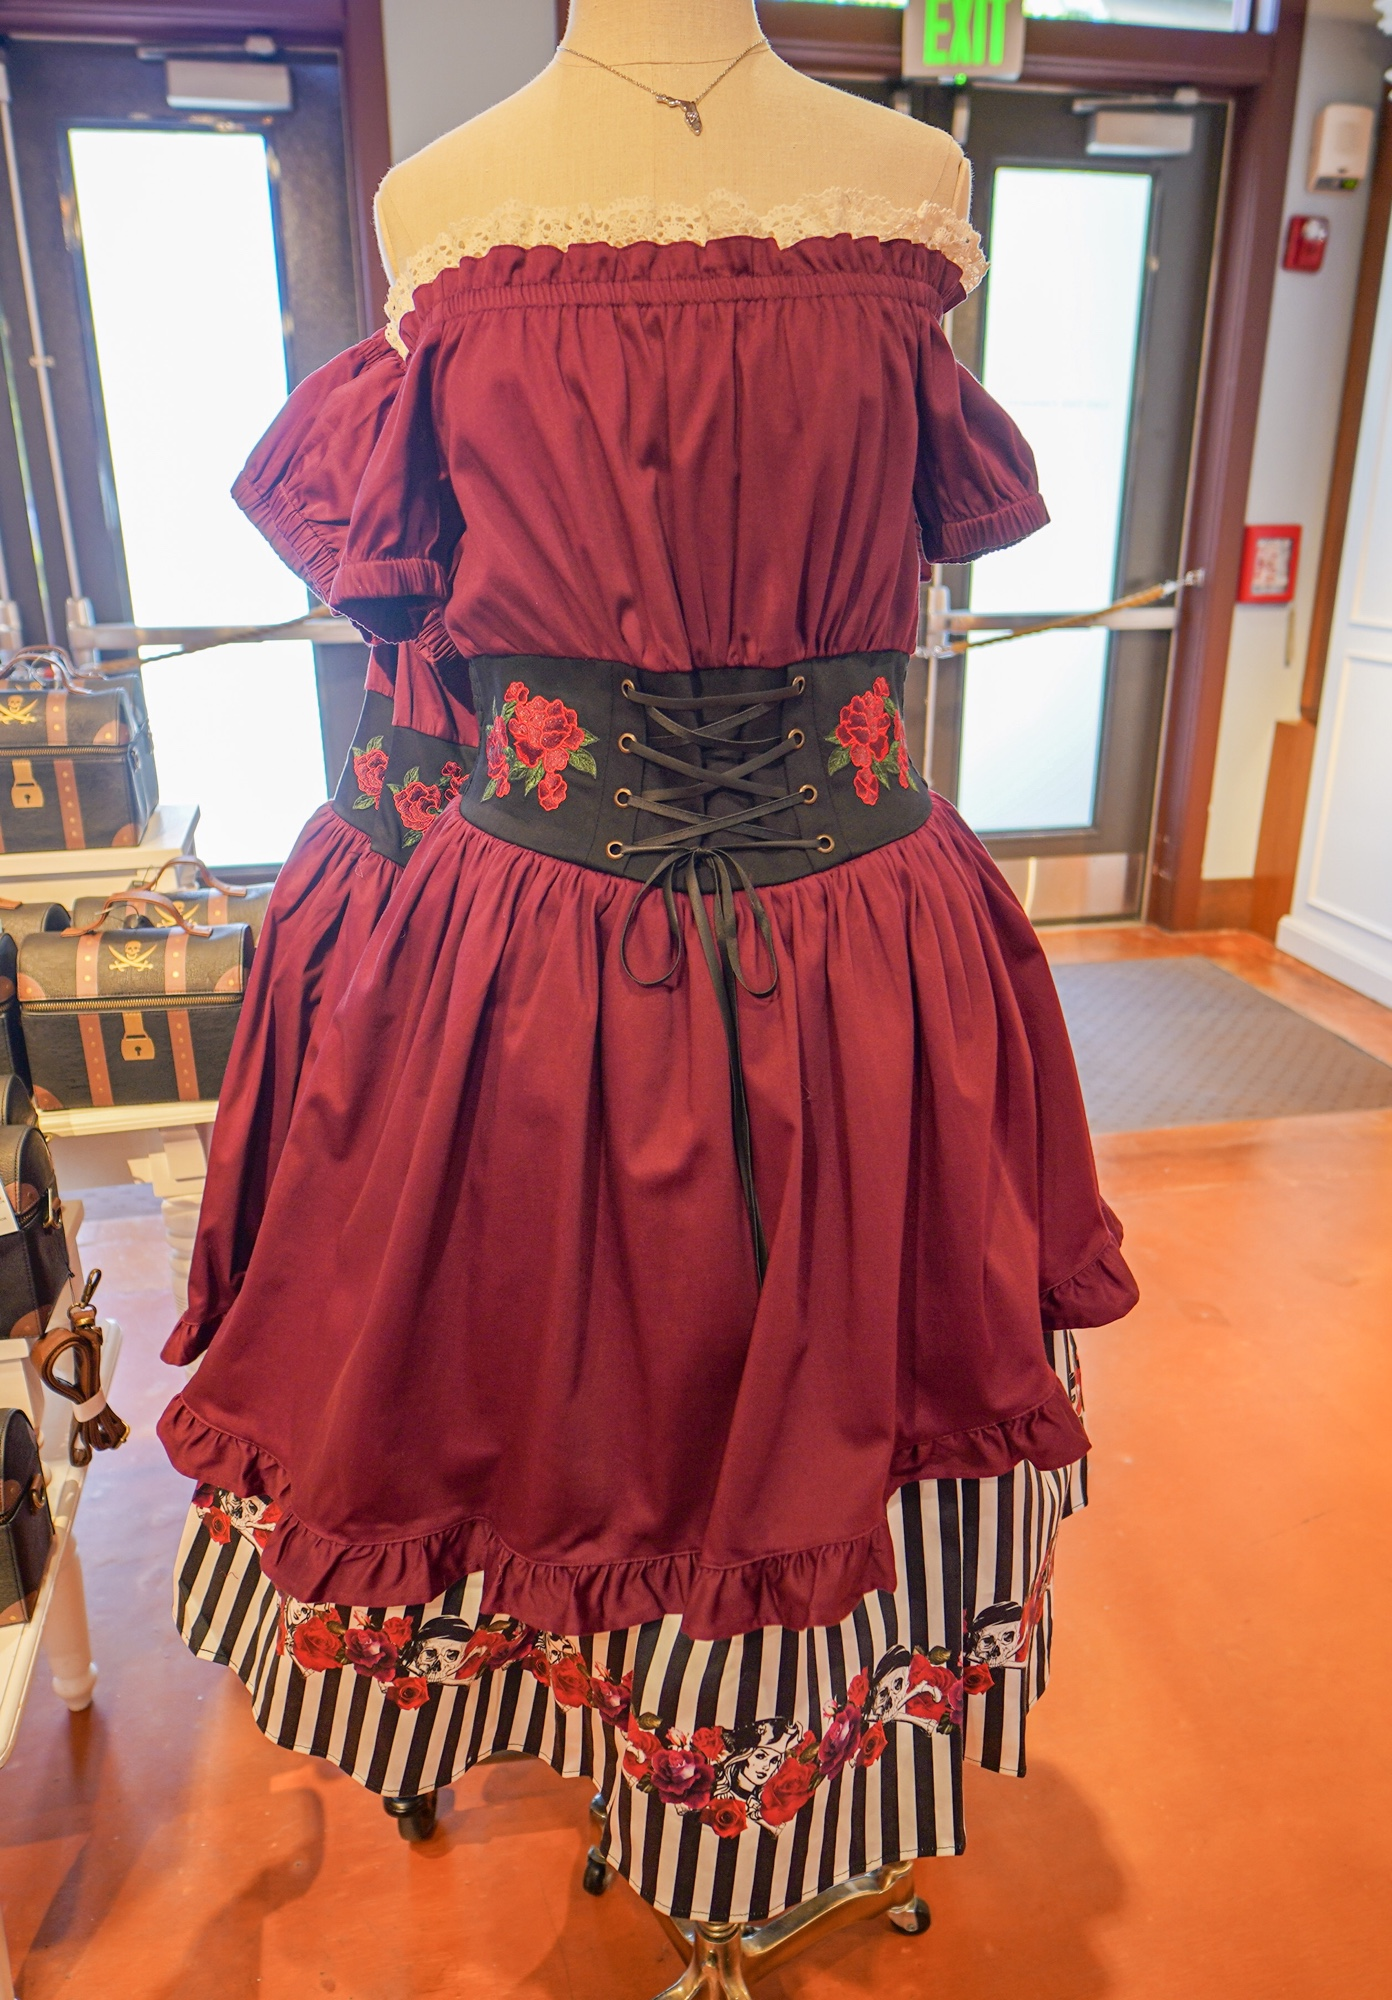 New Redd Pirate Dress and Treasure Chest Handbag Available at The